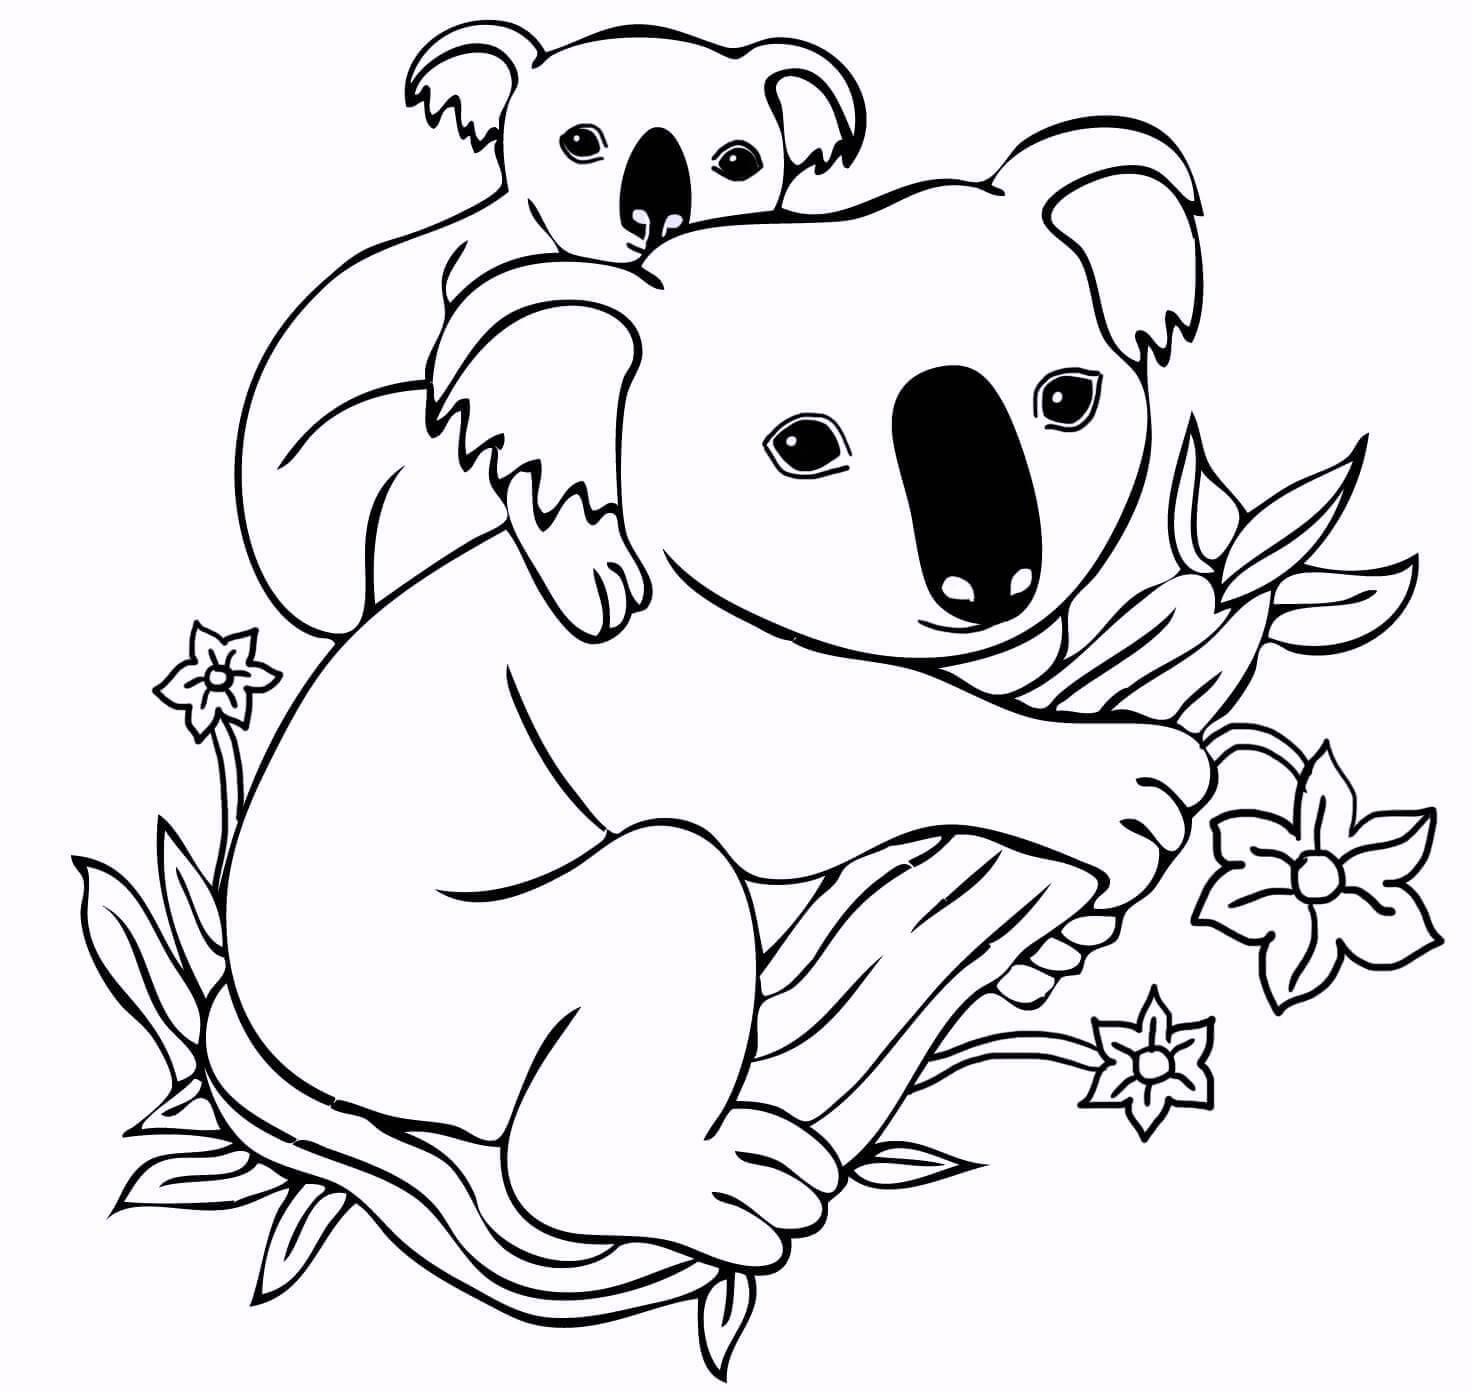 koala-and-babies-coloring-pages